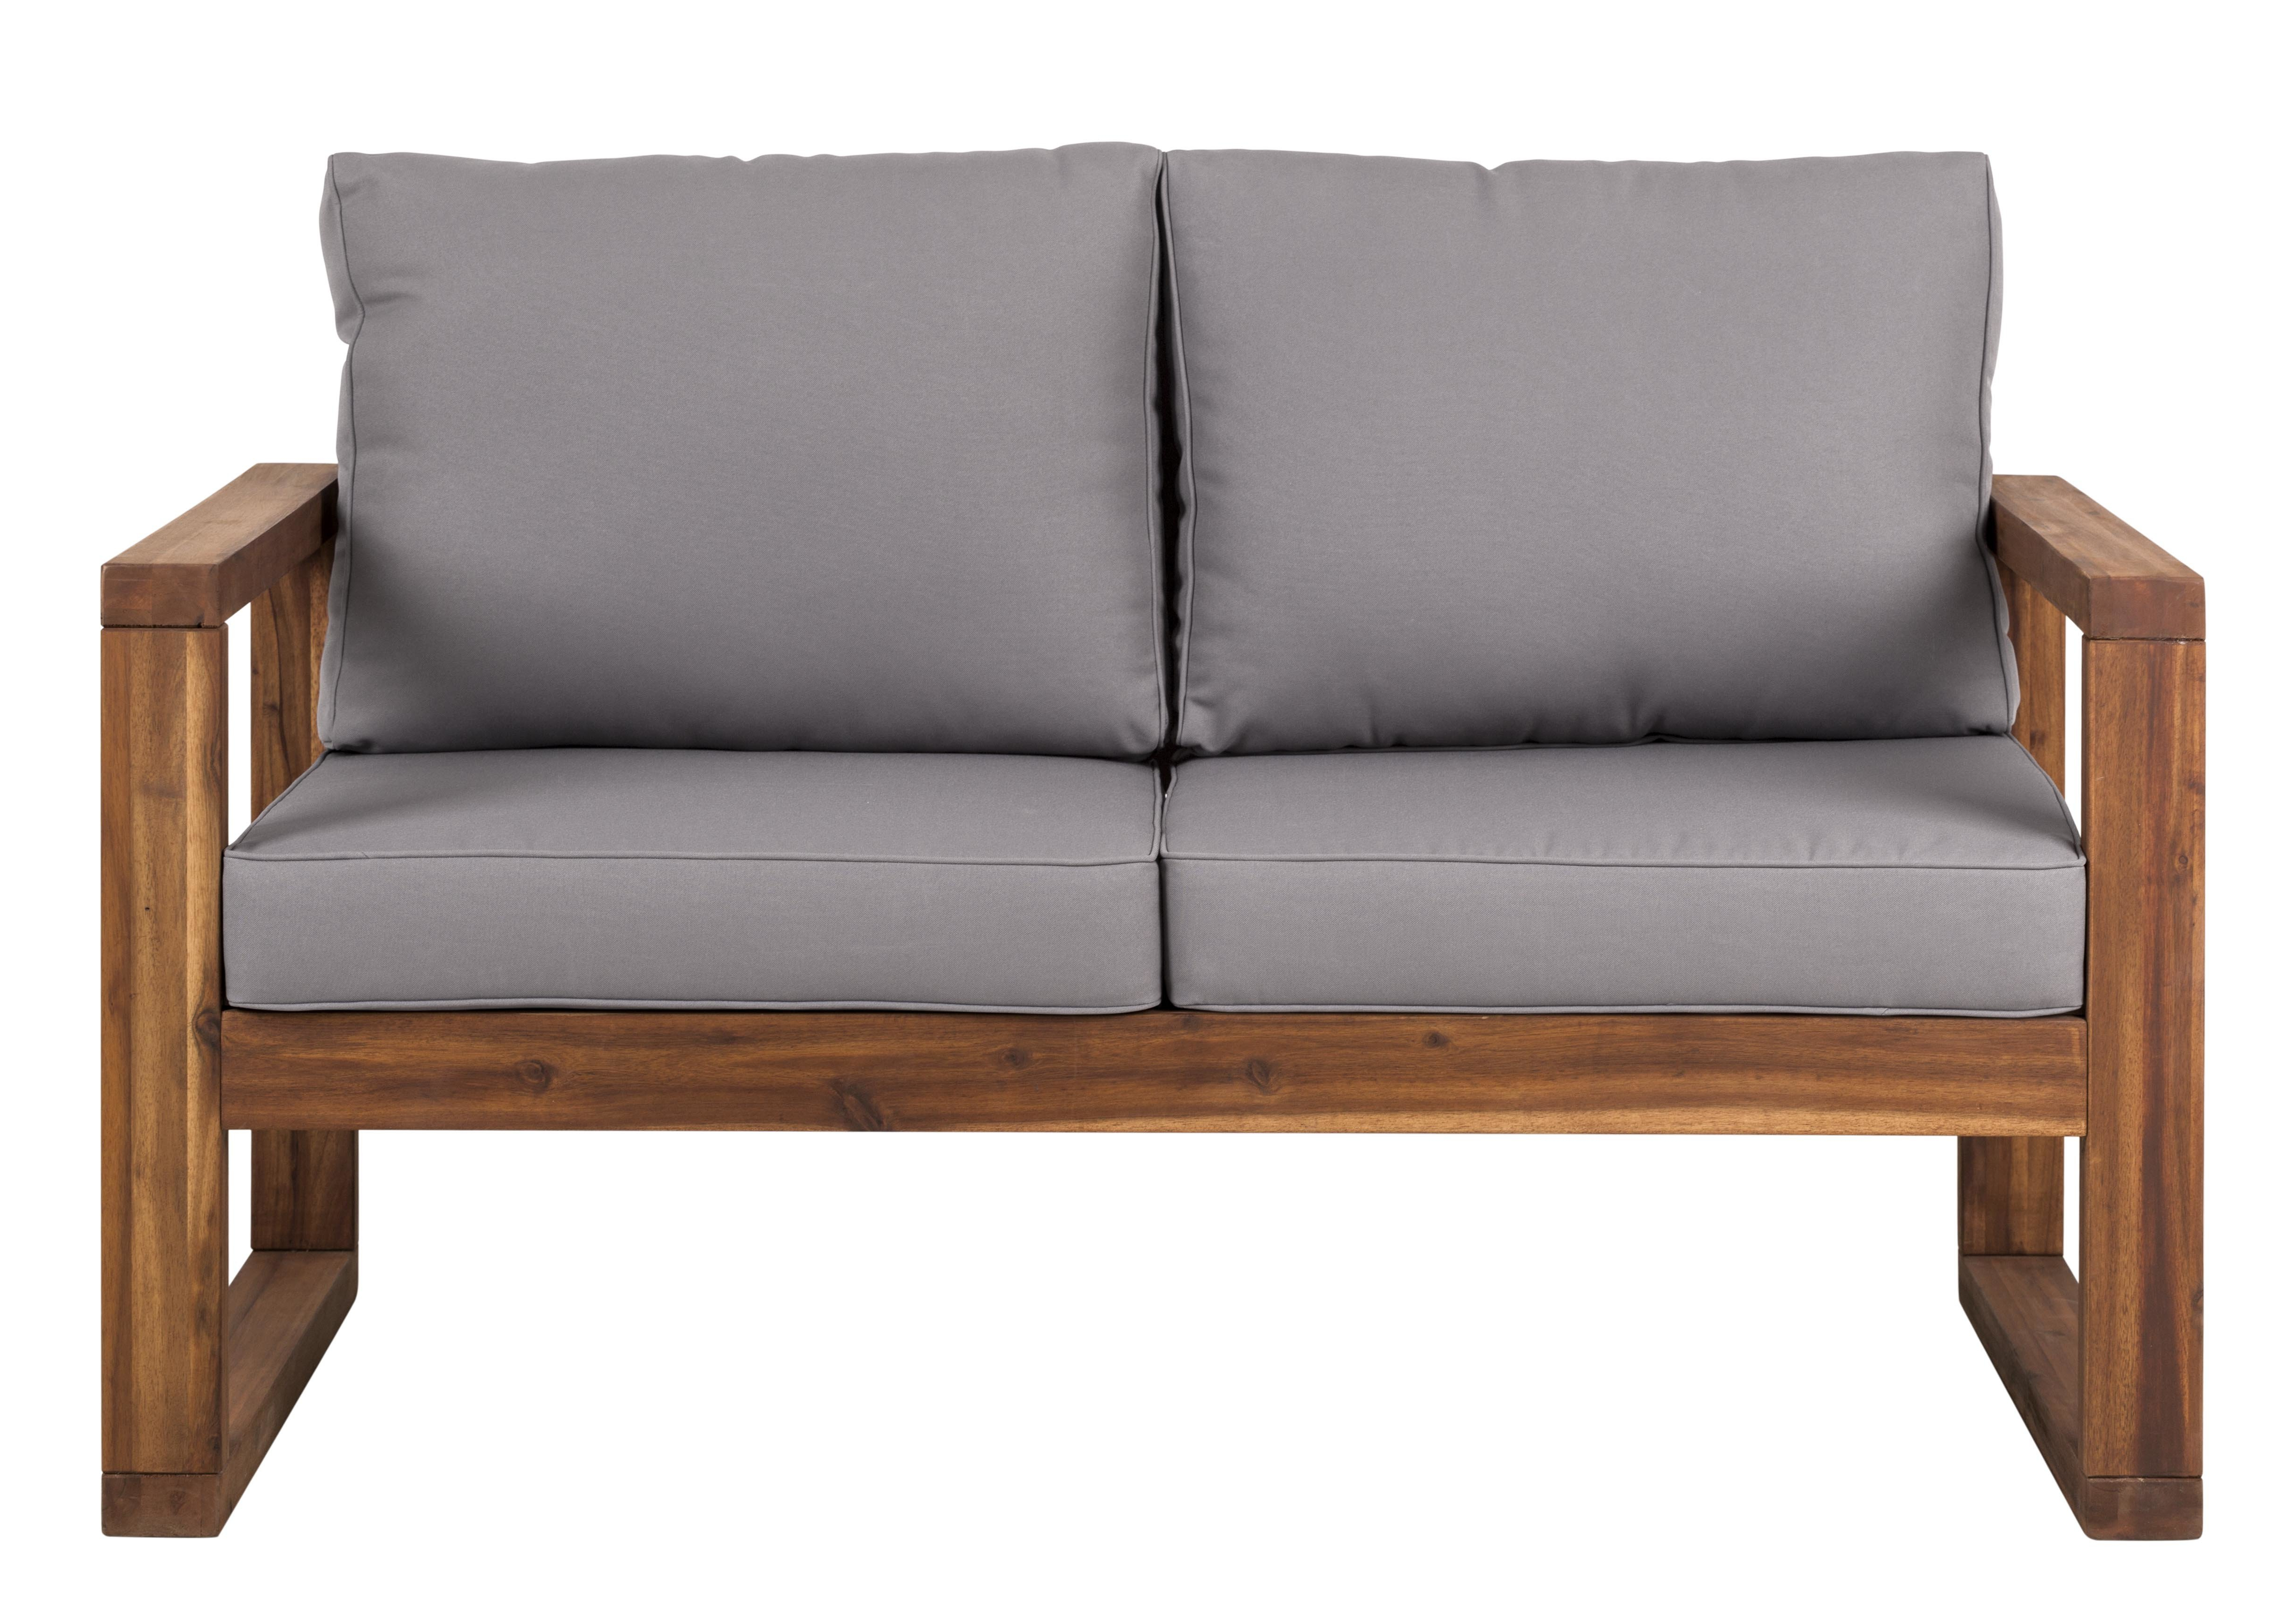 Famous Lyall Loveseats With Cushion Throughout Lyall Loveseat With Cushion (View 4 of 20)